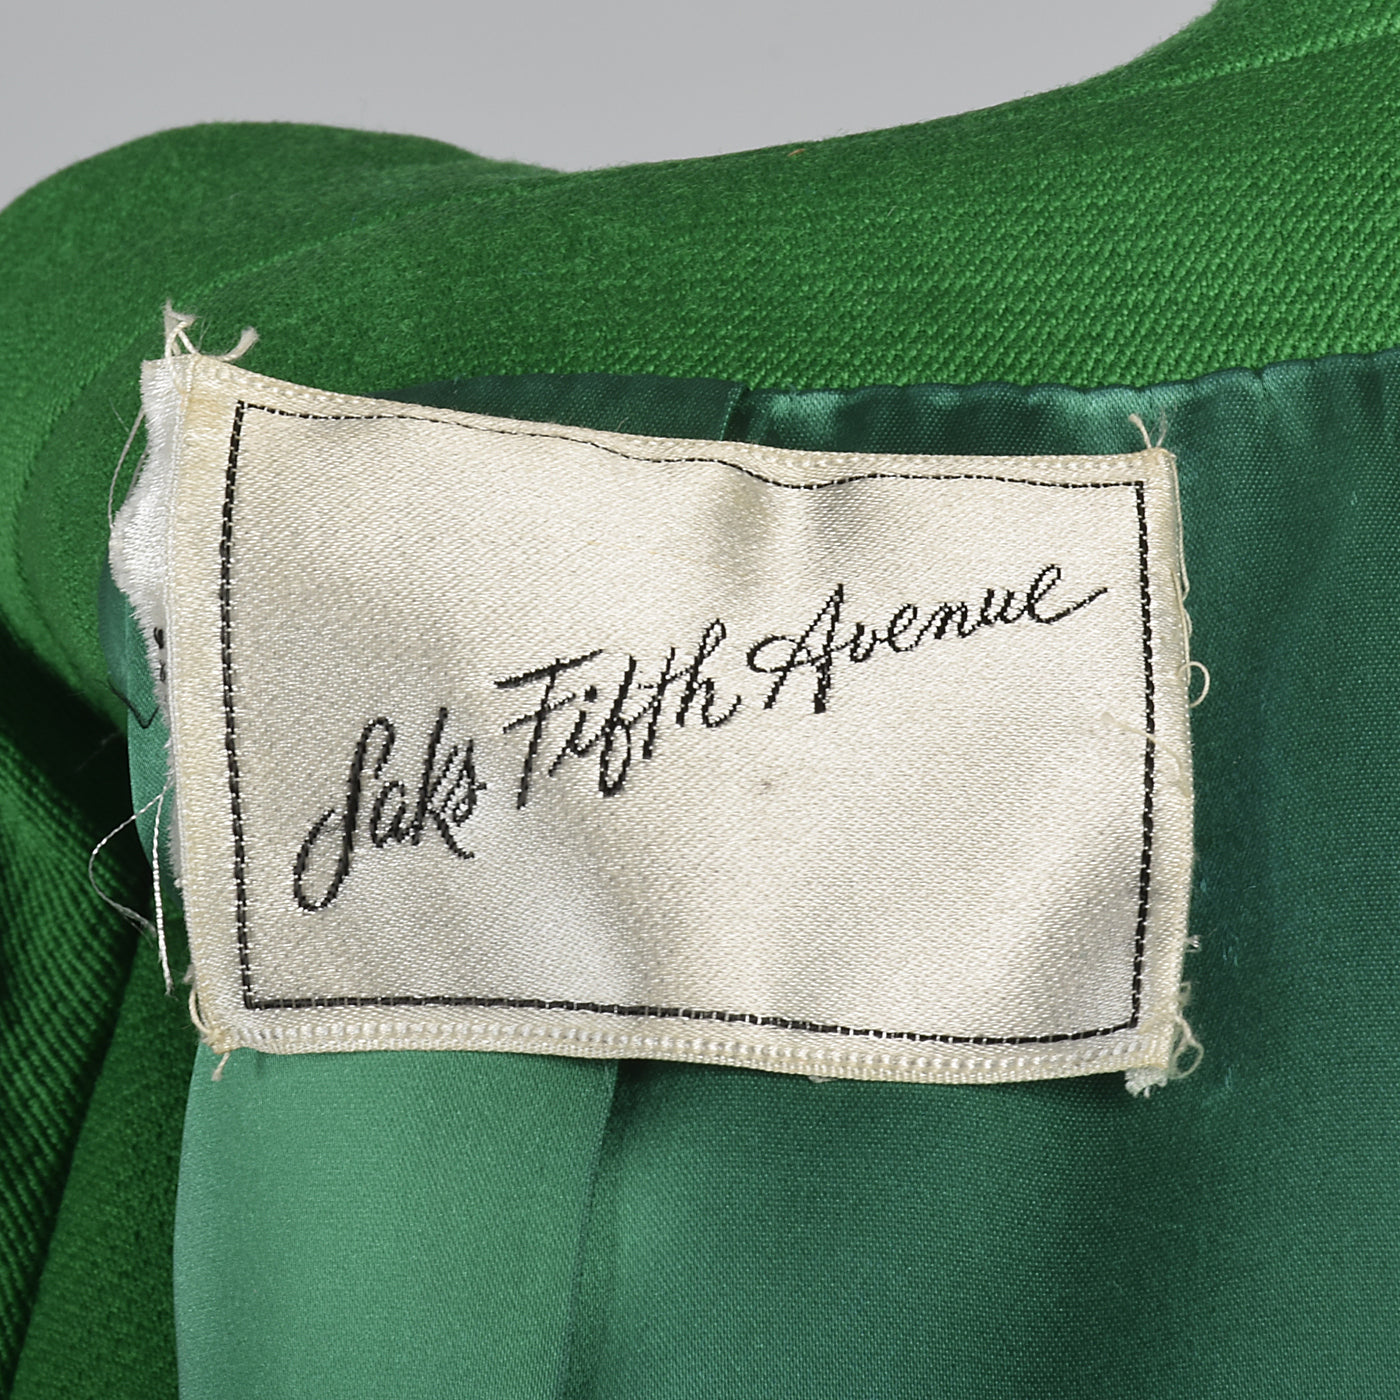 1960s Show Stopping Kelly Green Maxi Coat from Saks Fifth Avenue